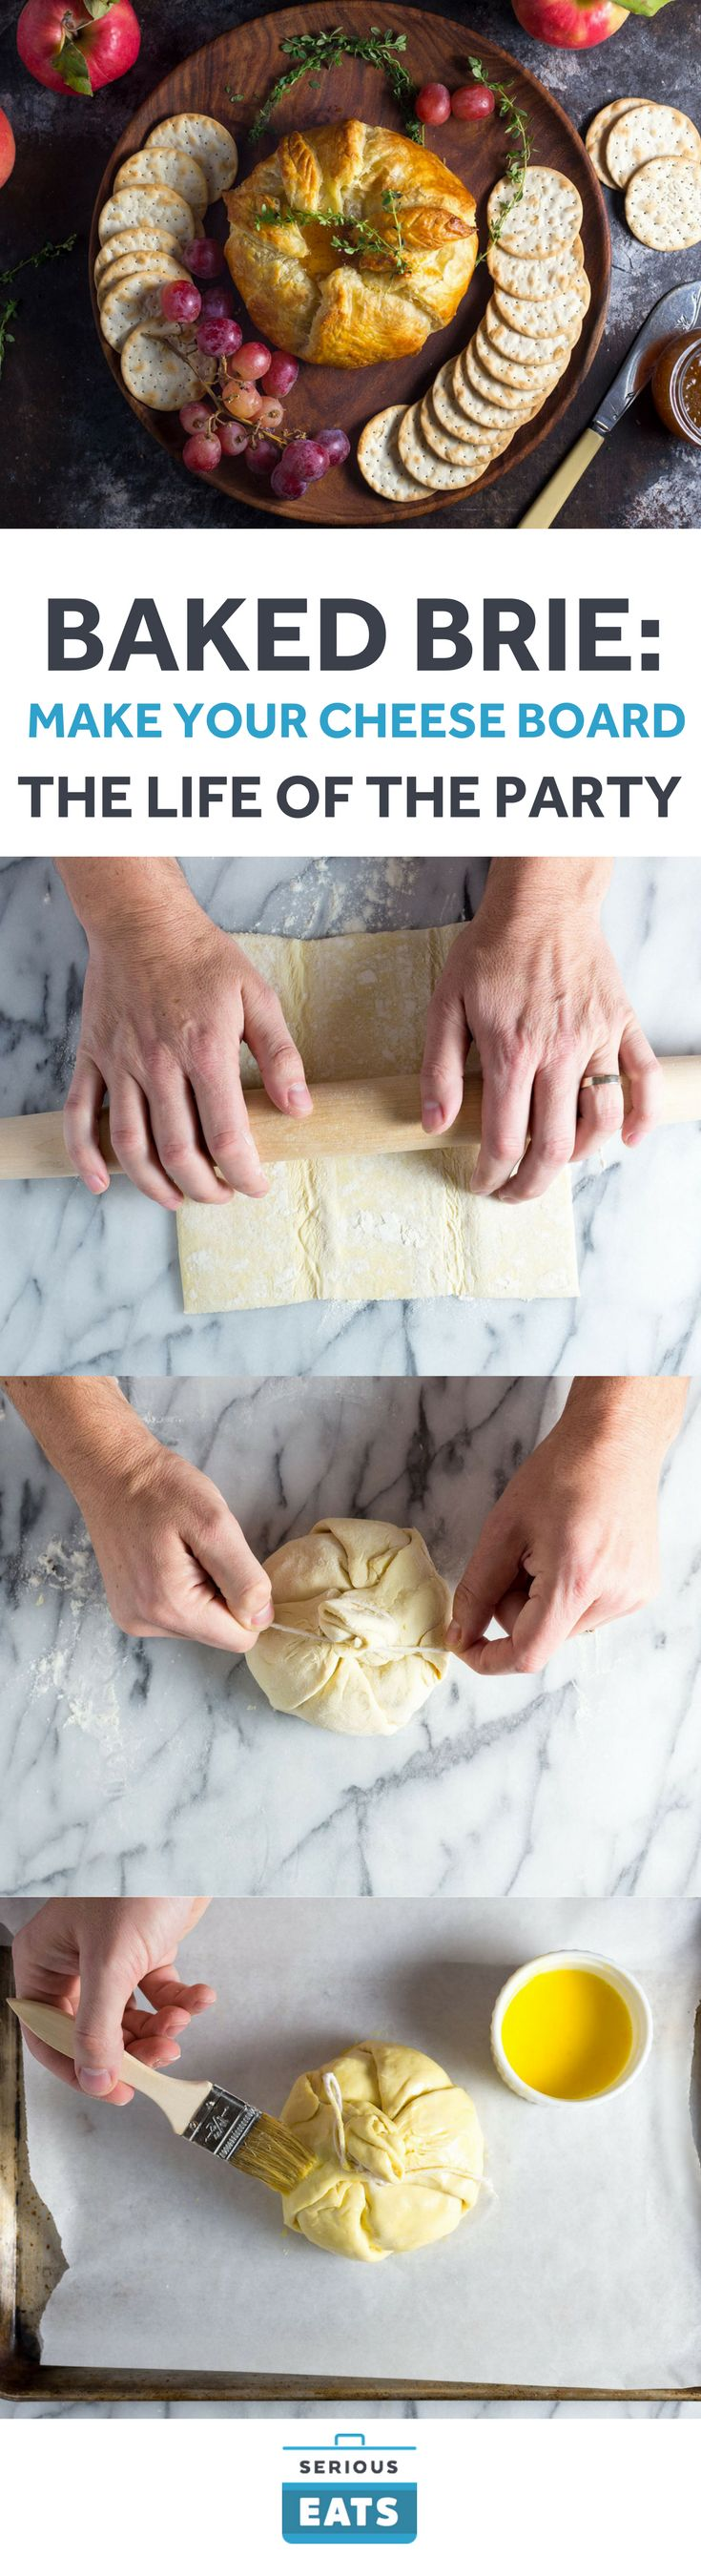 Want to take your baked Brie to the next level? Make it en croûte.